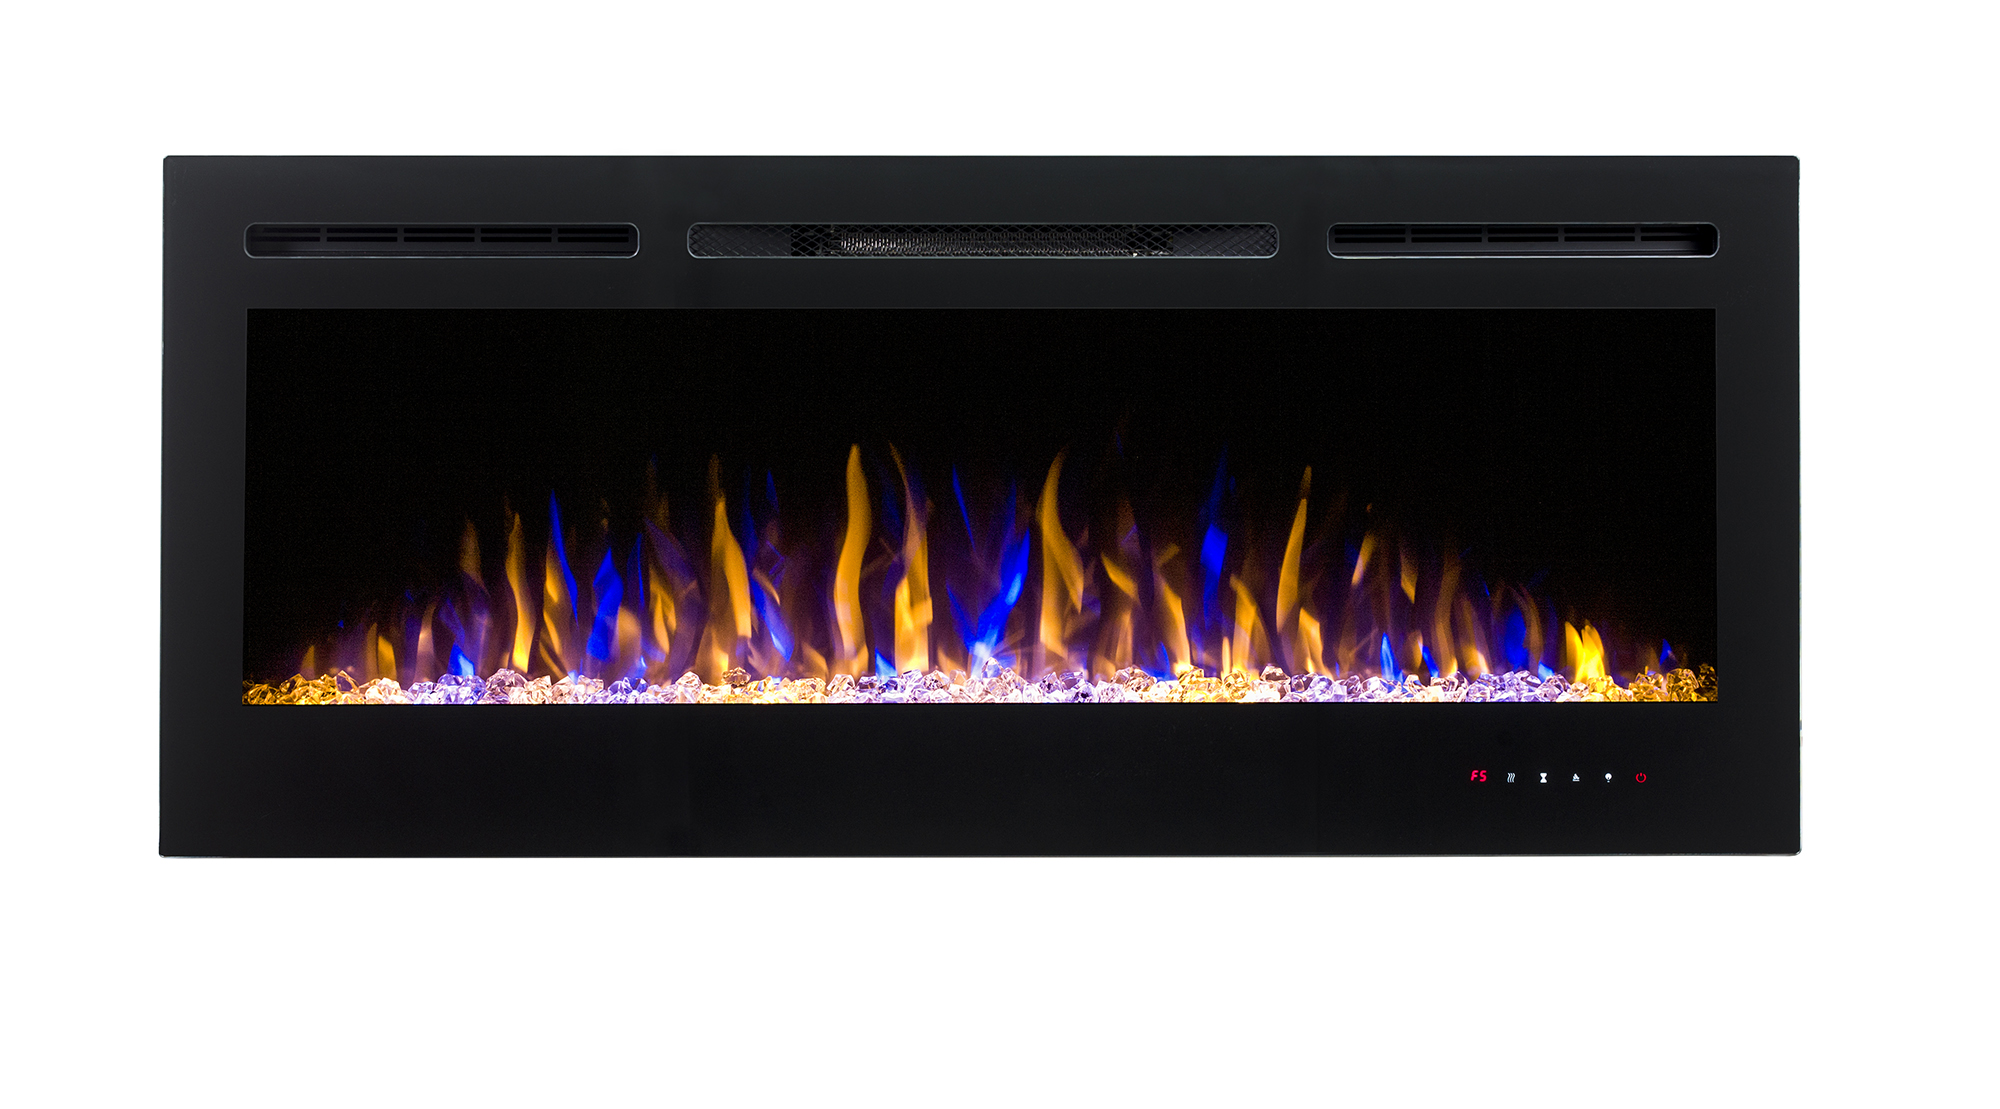 2018 wall mounted/built in 50'' electric fireplace heater with black